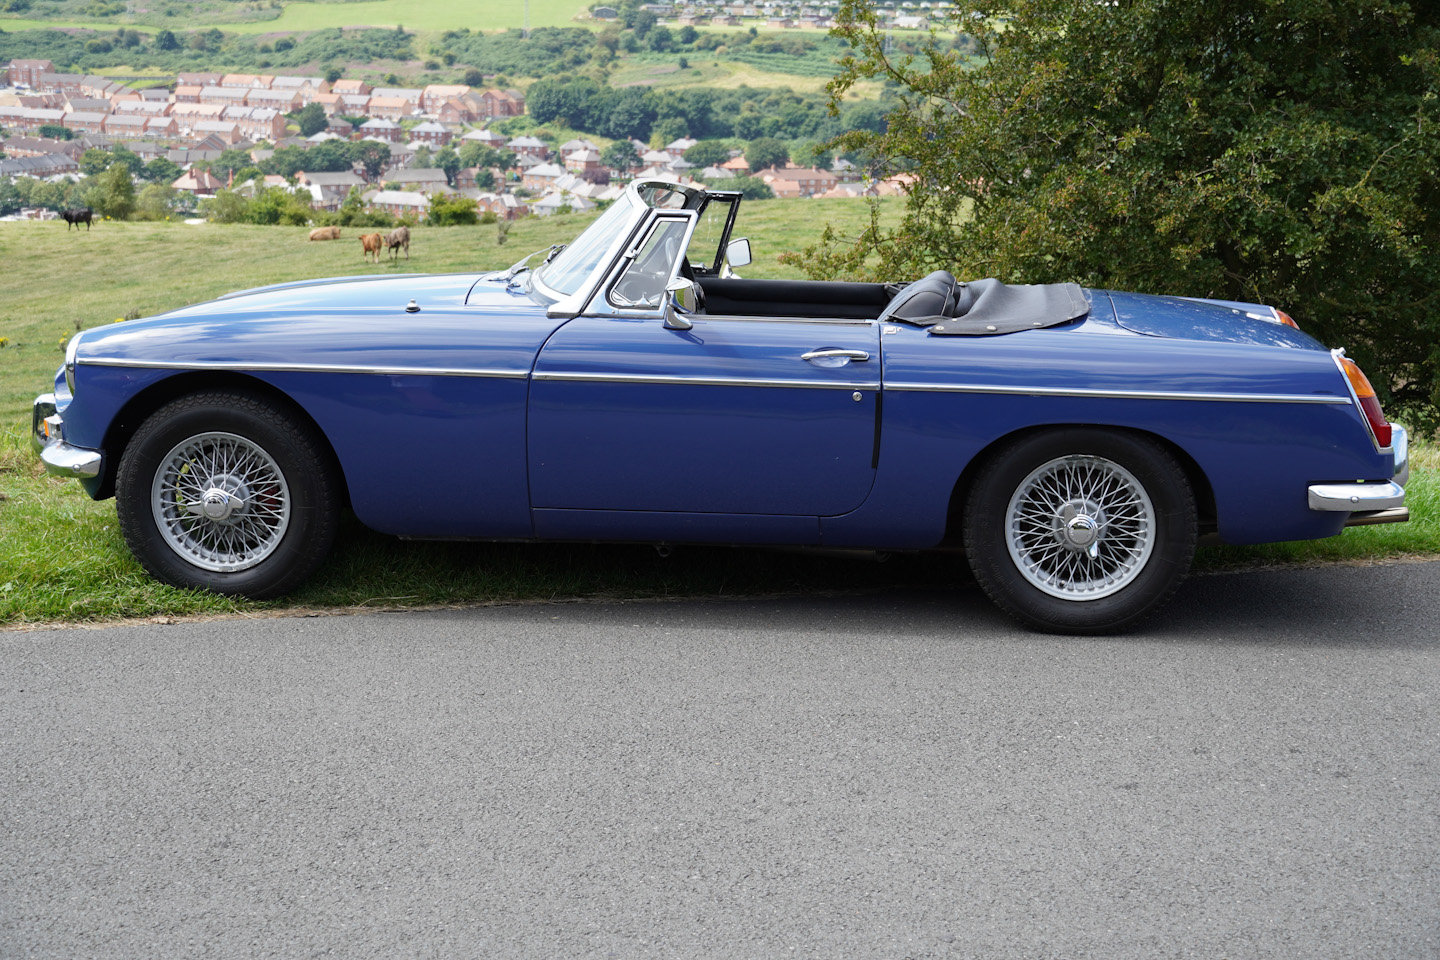 1968 MGB Roadster - Original UK Numbers Matching Car For Sale (picture 8 of 10)